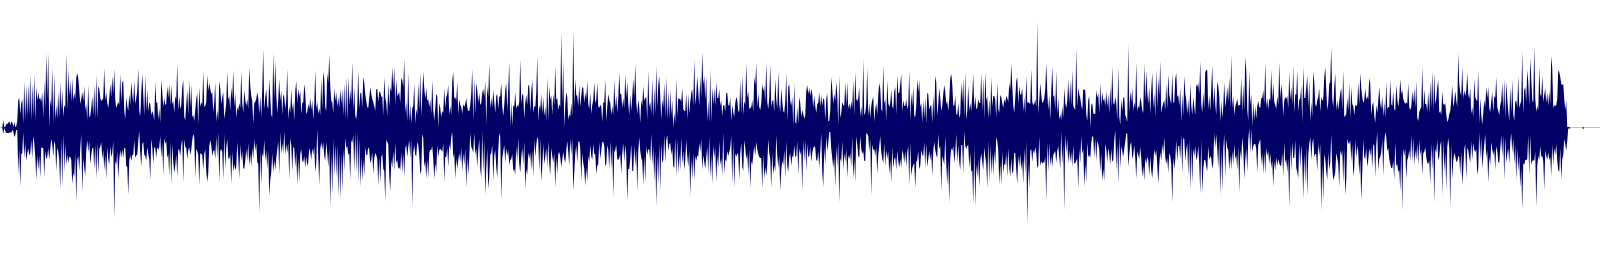 waveform of track #100575